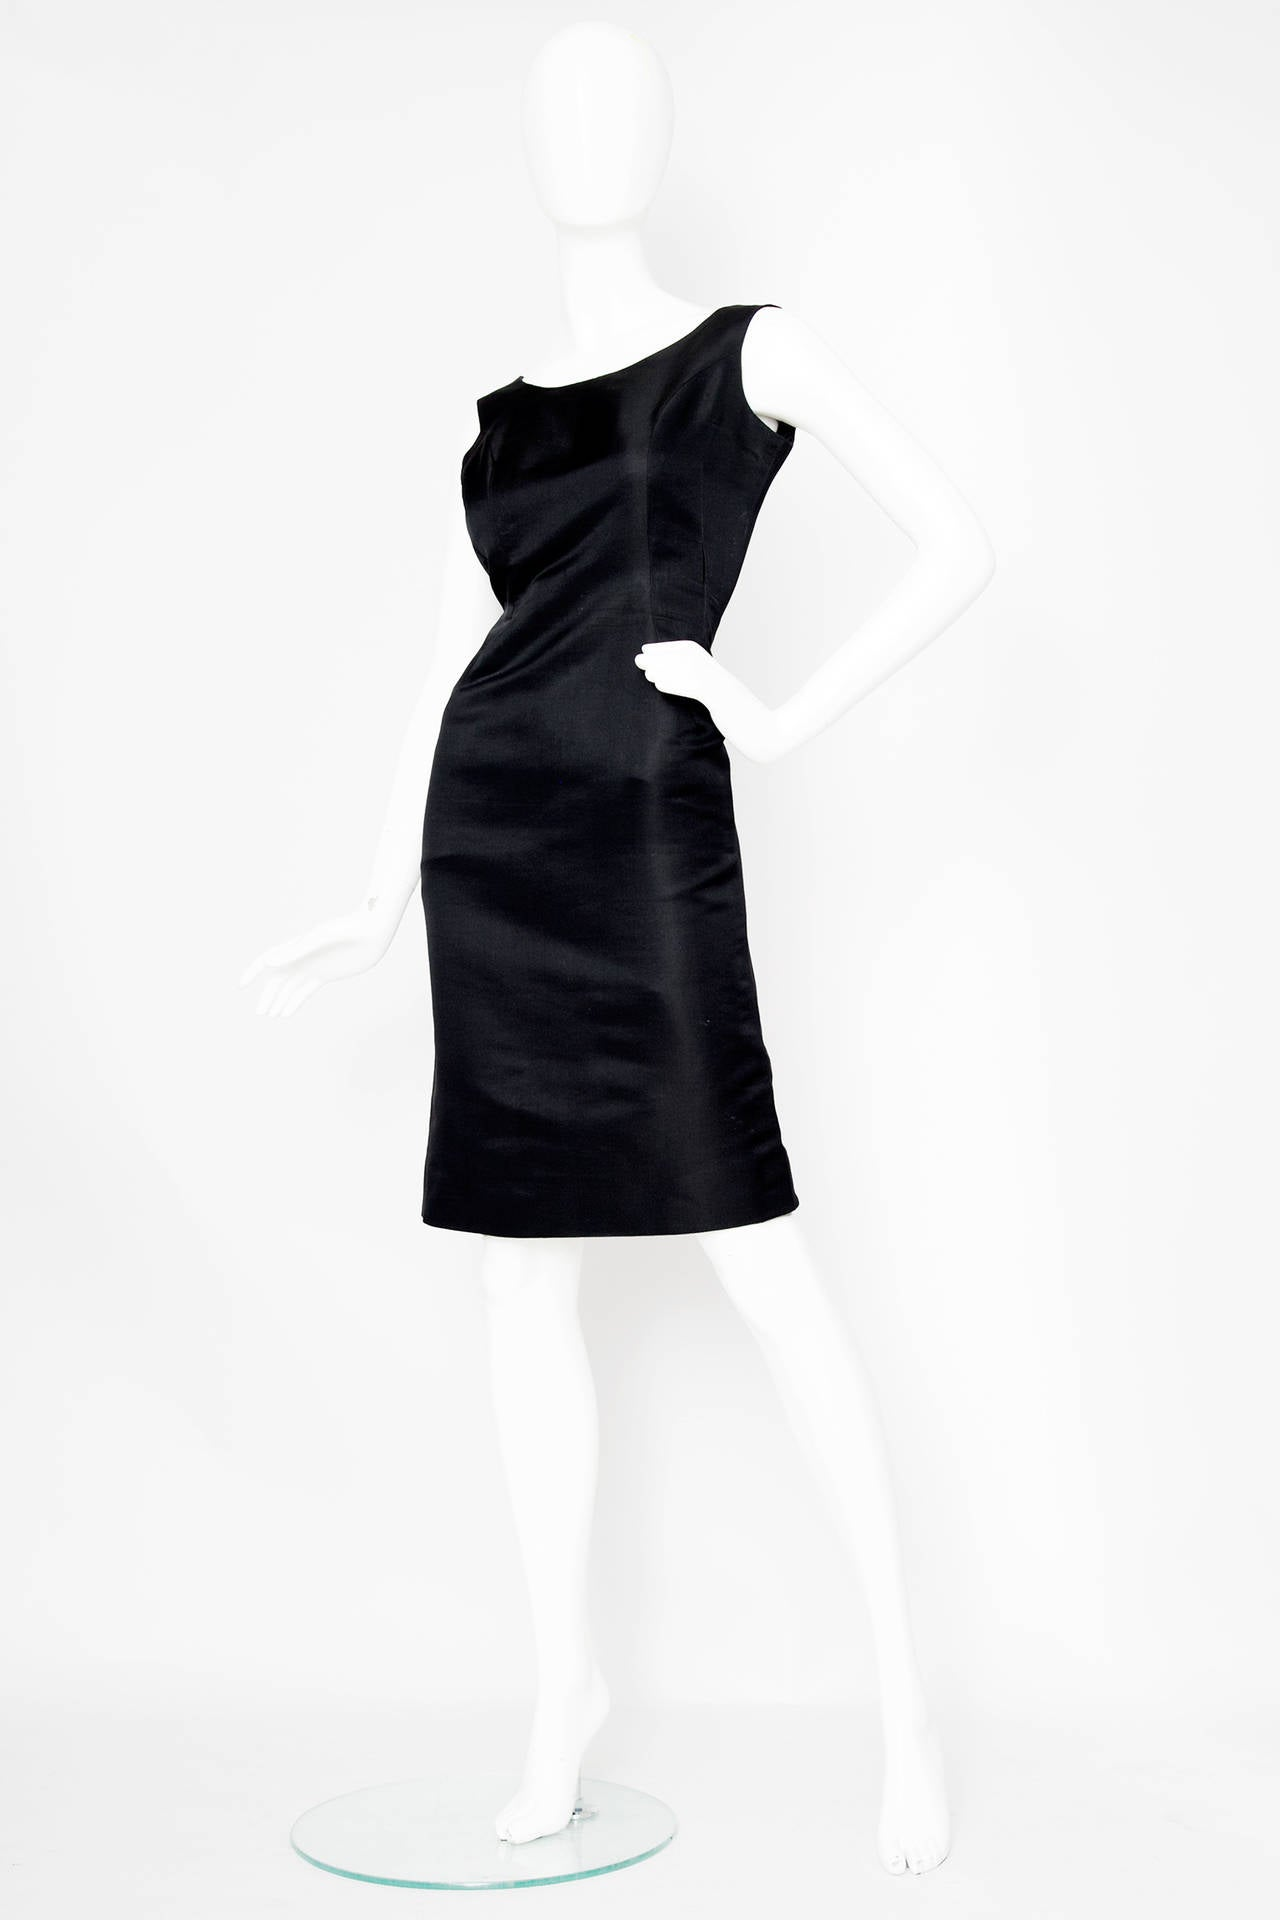 A stunning 1960s Pierre Cardin Haute Couture dress in a heavy black silk with impeccable couture finish. The classic shift dress has paneling down the front and a simple scoop neckline. The dress has a low-cut back and closes with a zipper and hook